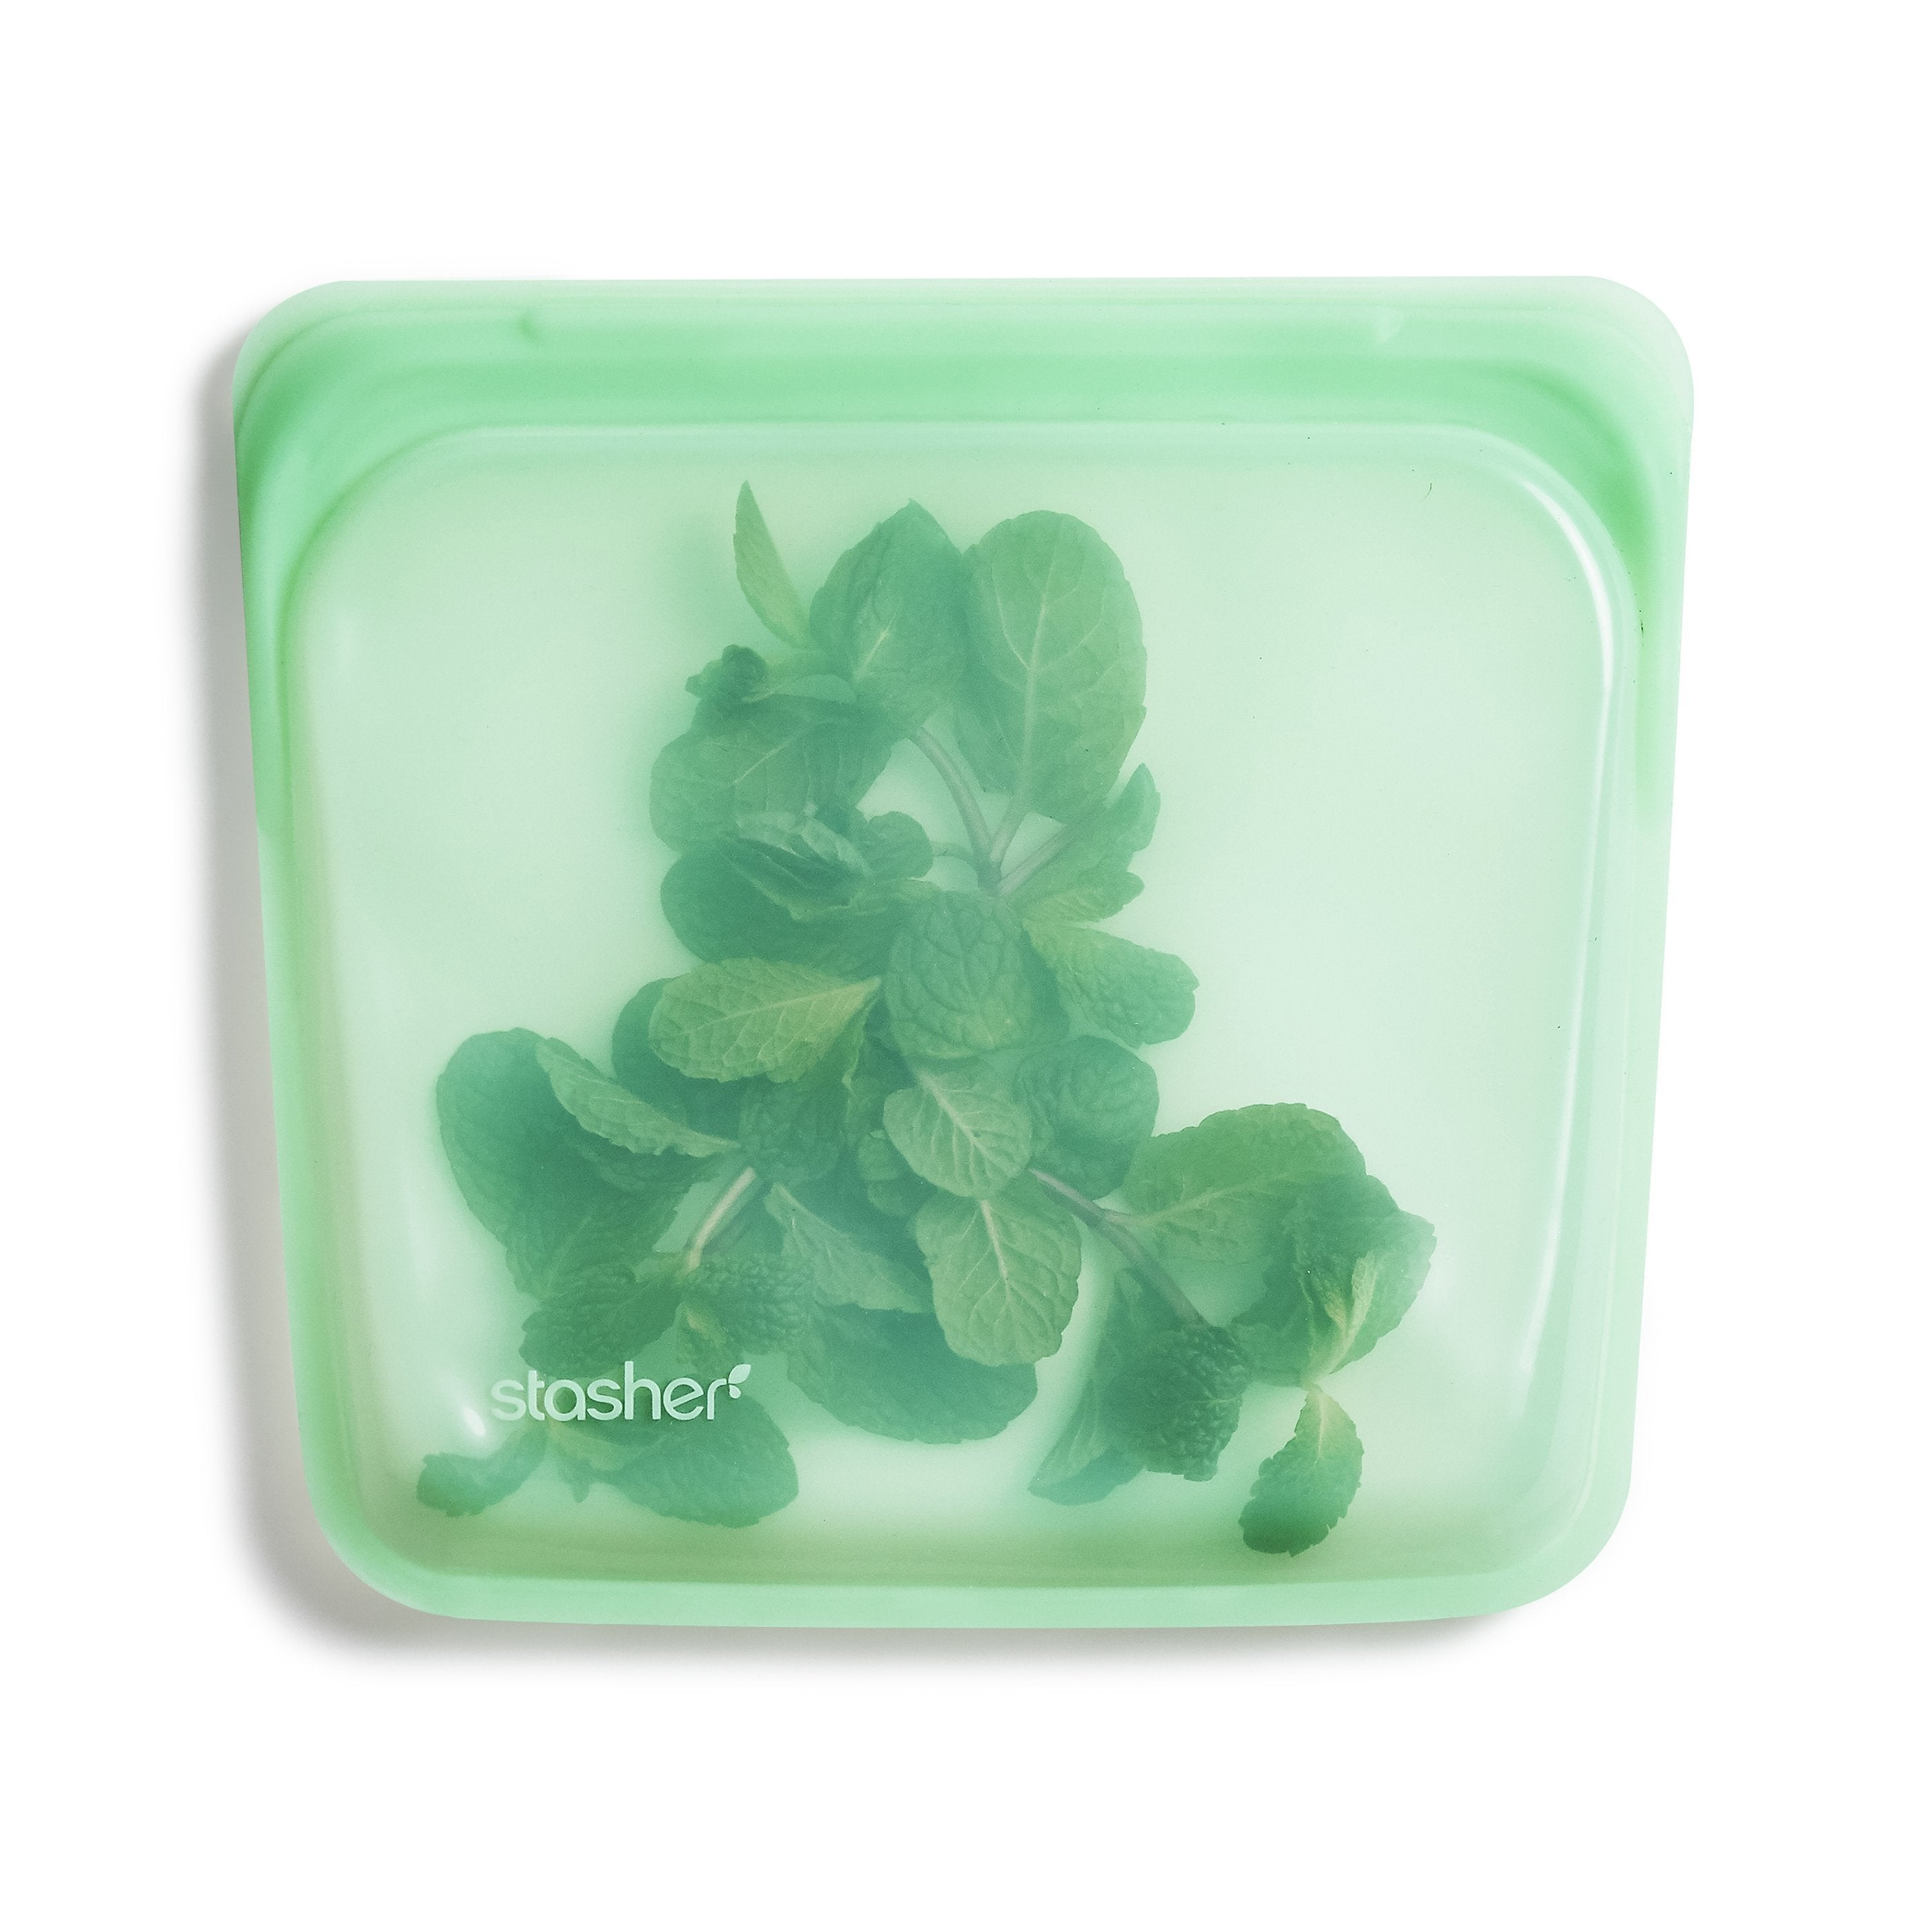 Mint Stasher Silicone Sandwich Bag - The Weekly Shop | Plastic Free Online Shop